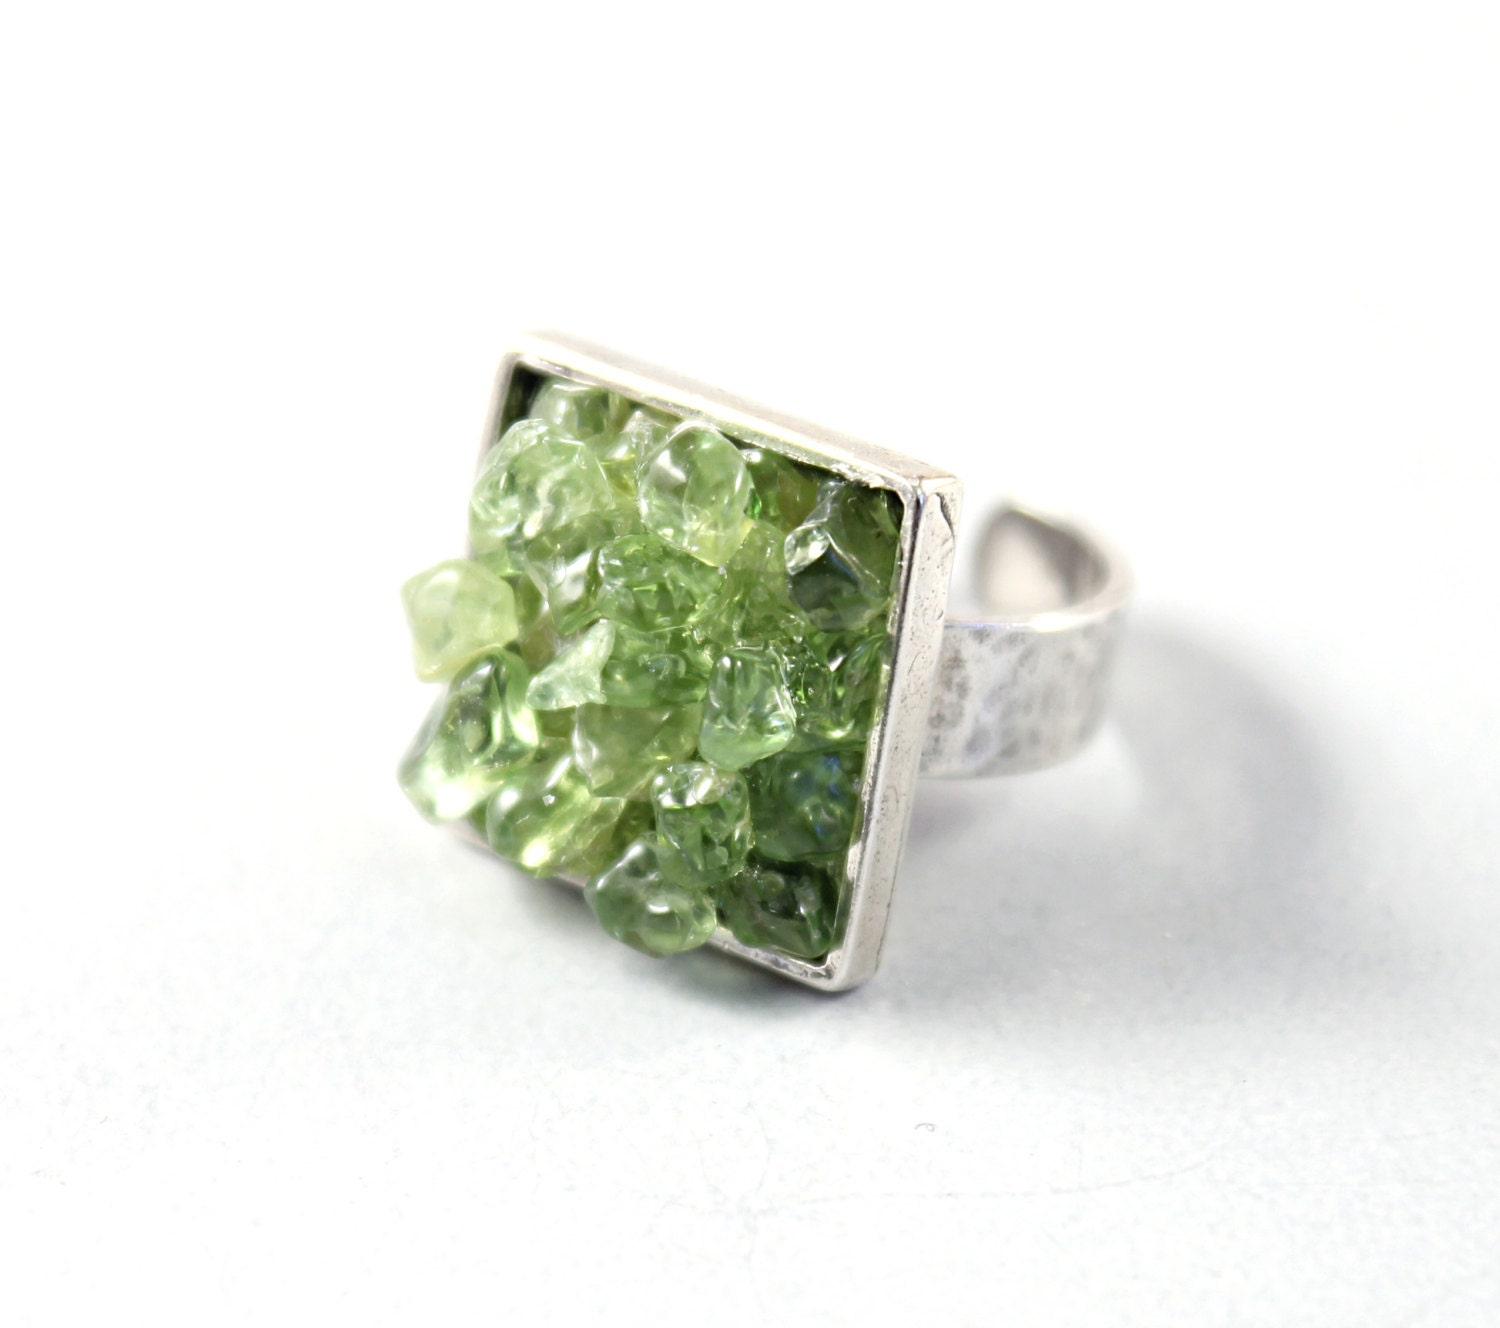 Silver ring - big green crystal ring adjustable ring sterling jewelry by NatureLook - NatureLook